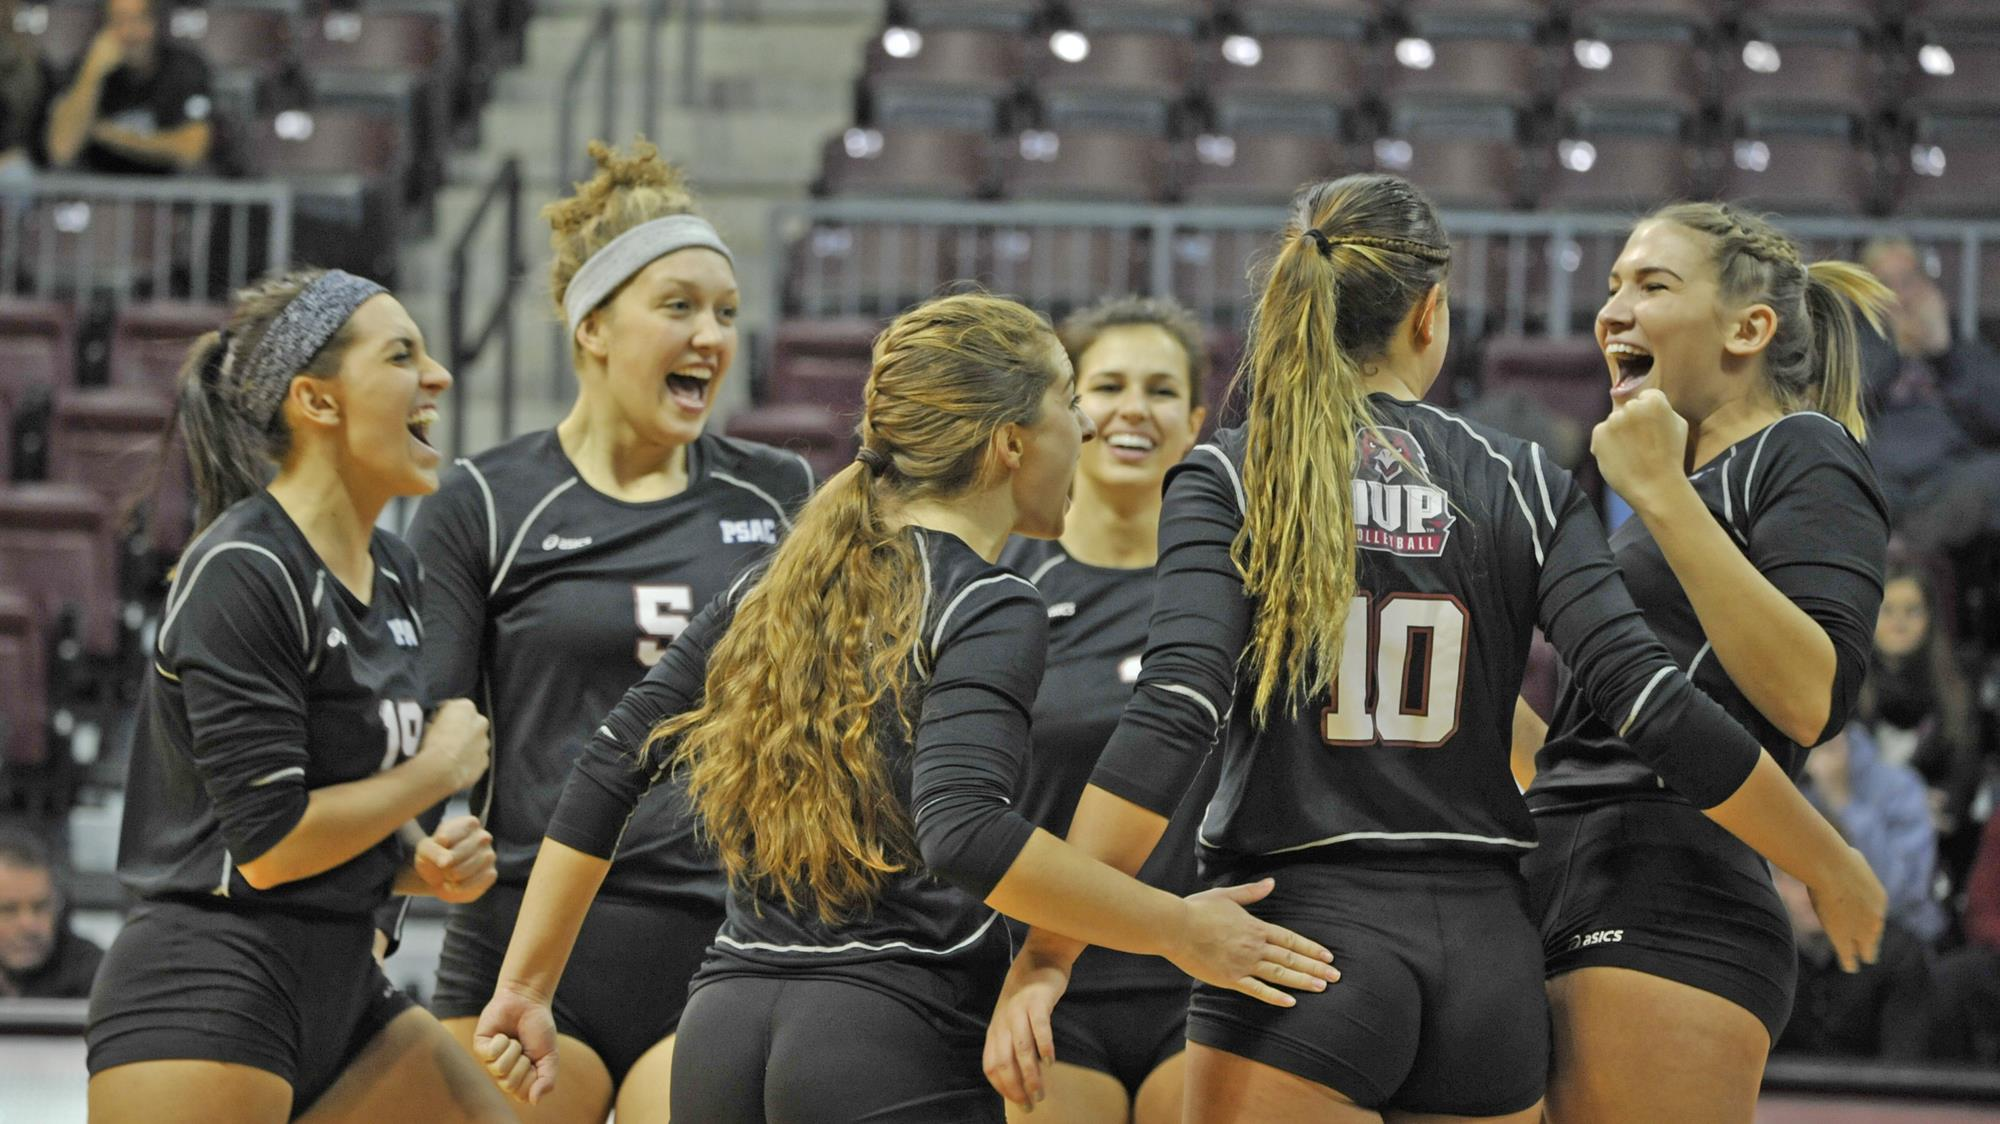 3e4c32c8a7b IUP Women s Volleyball releases 2018 schedule - Indiana University ...